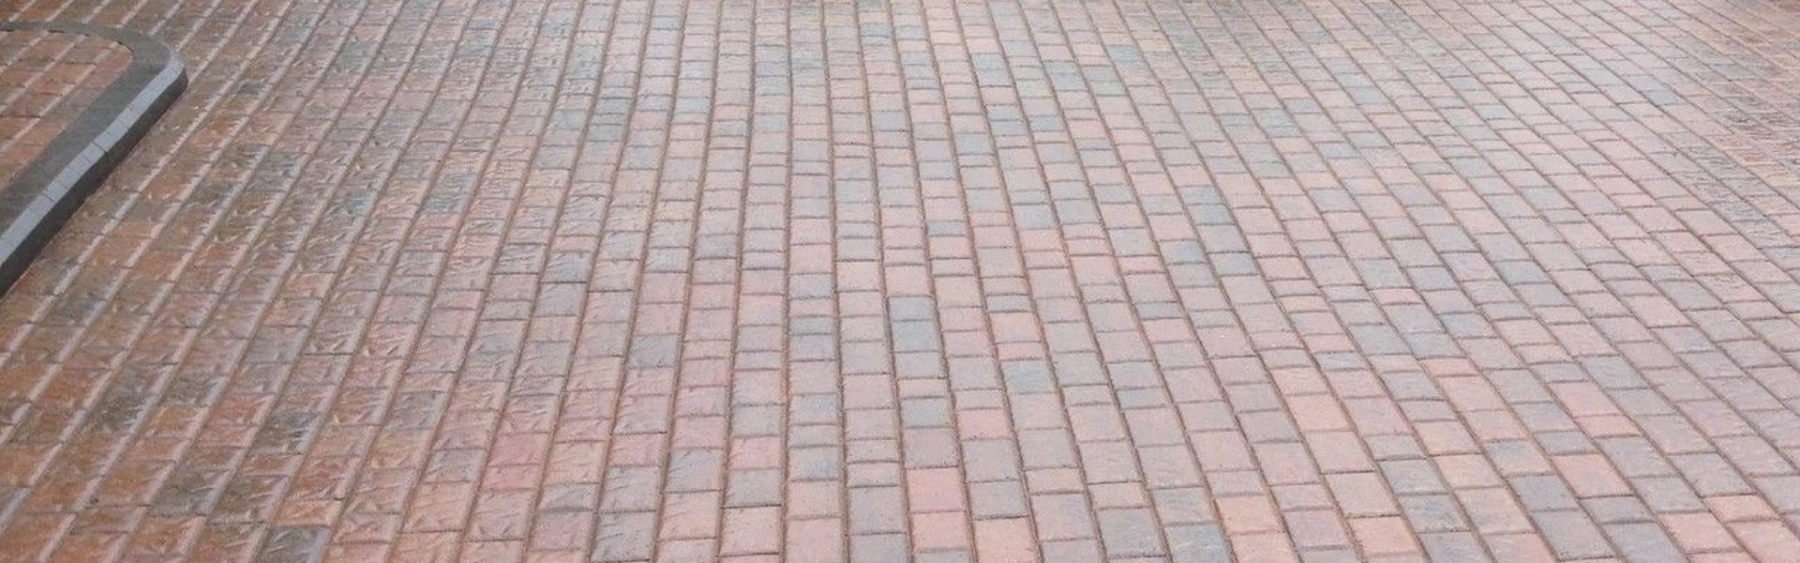 Drive way Block Paving completed with driveway sealant